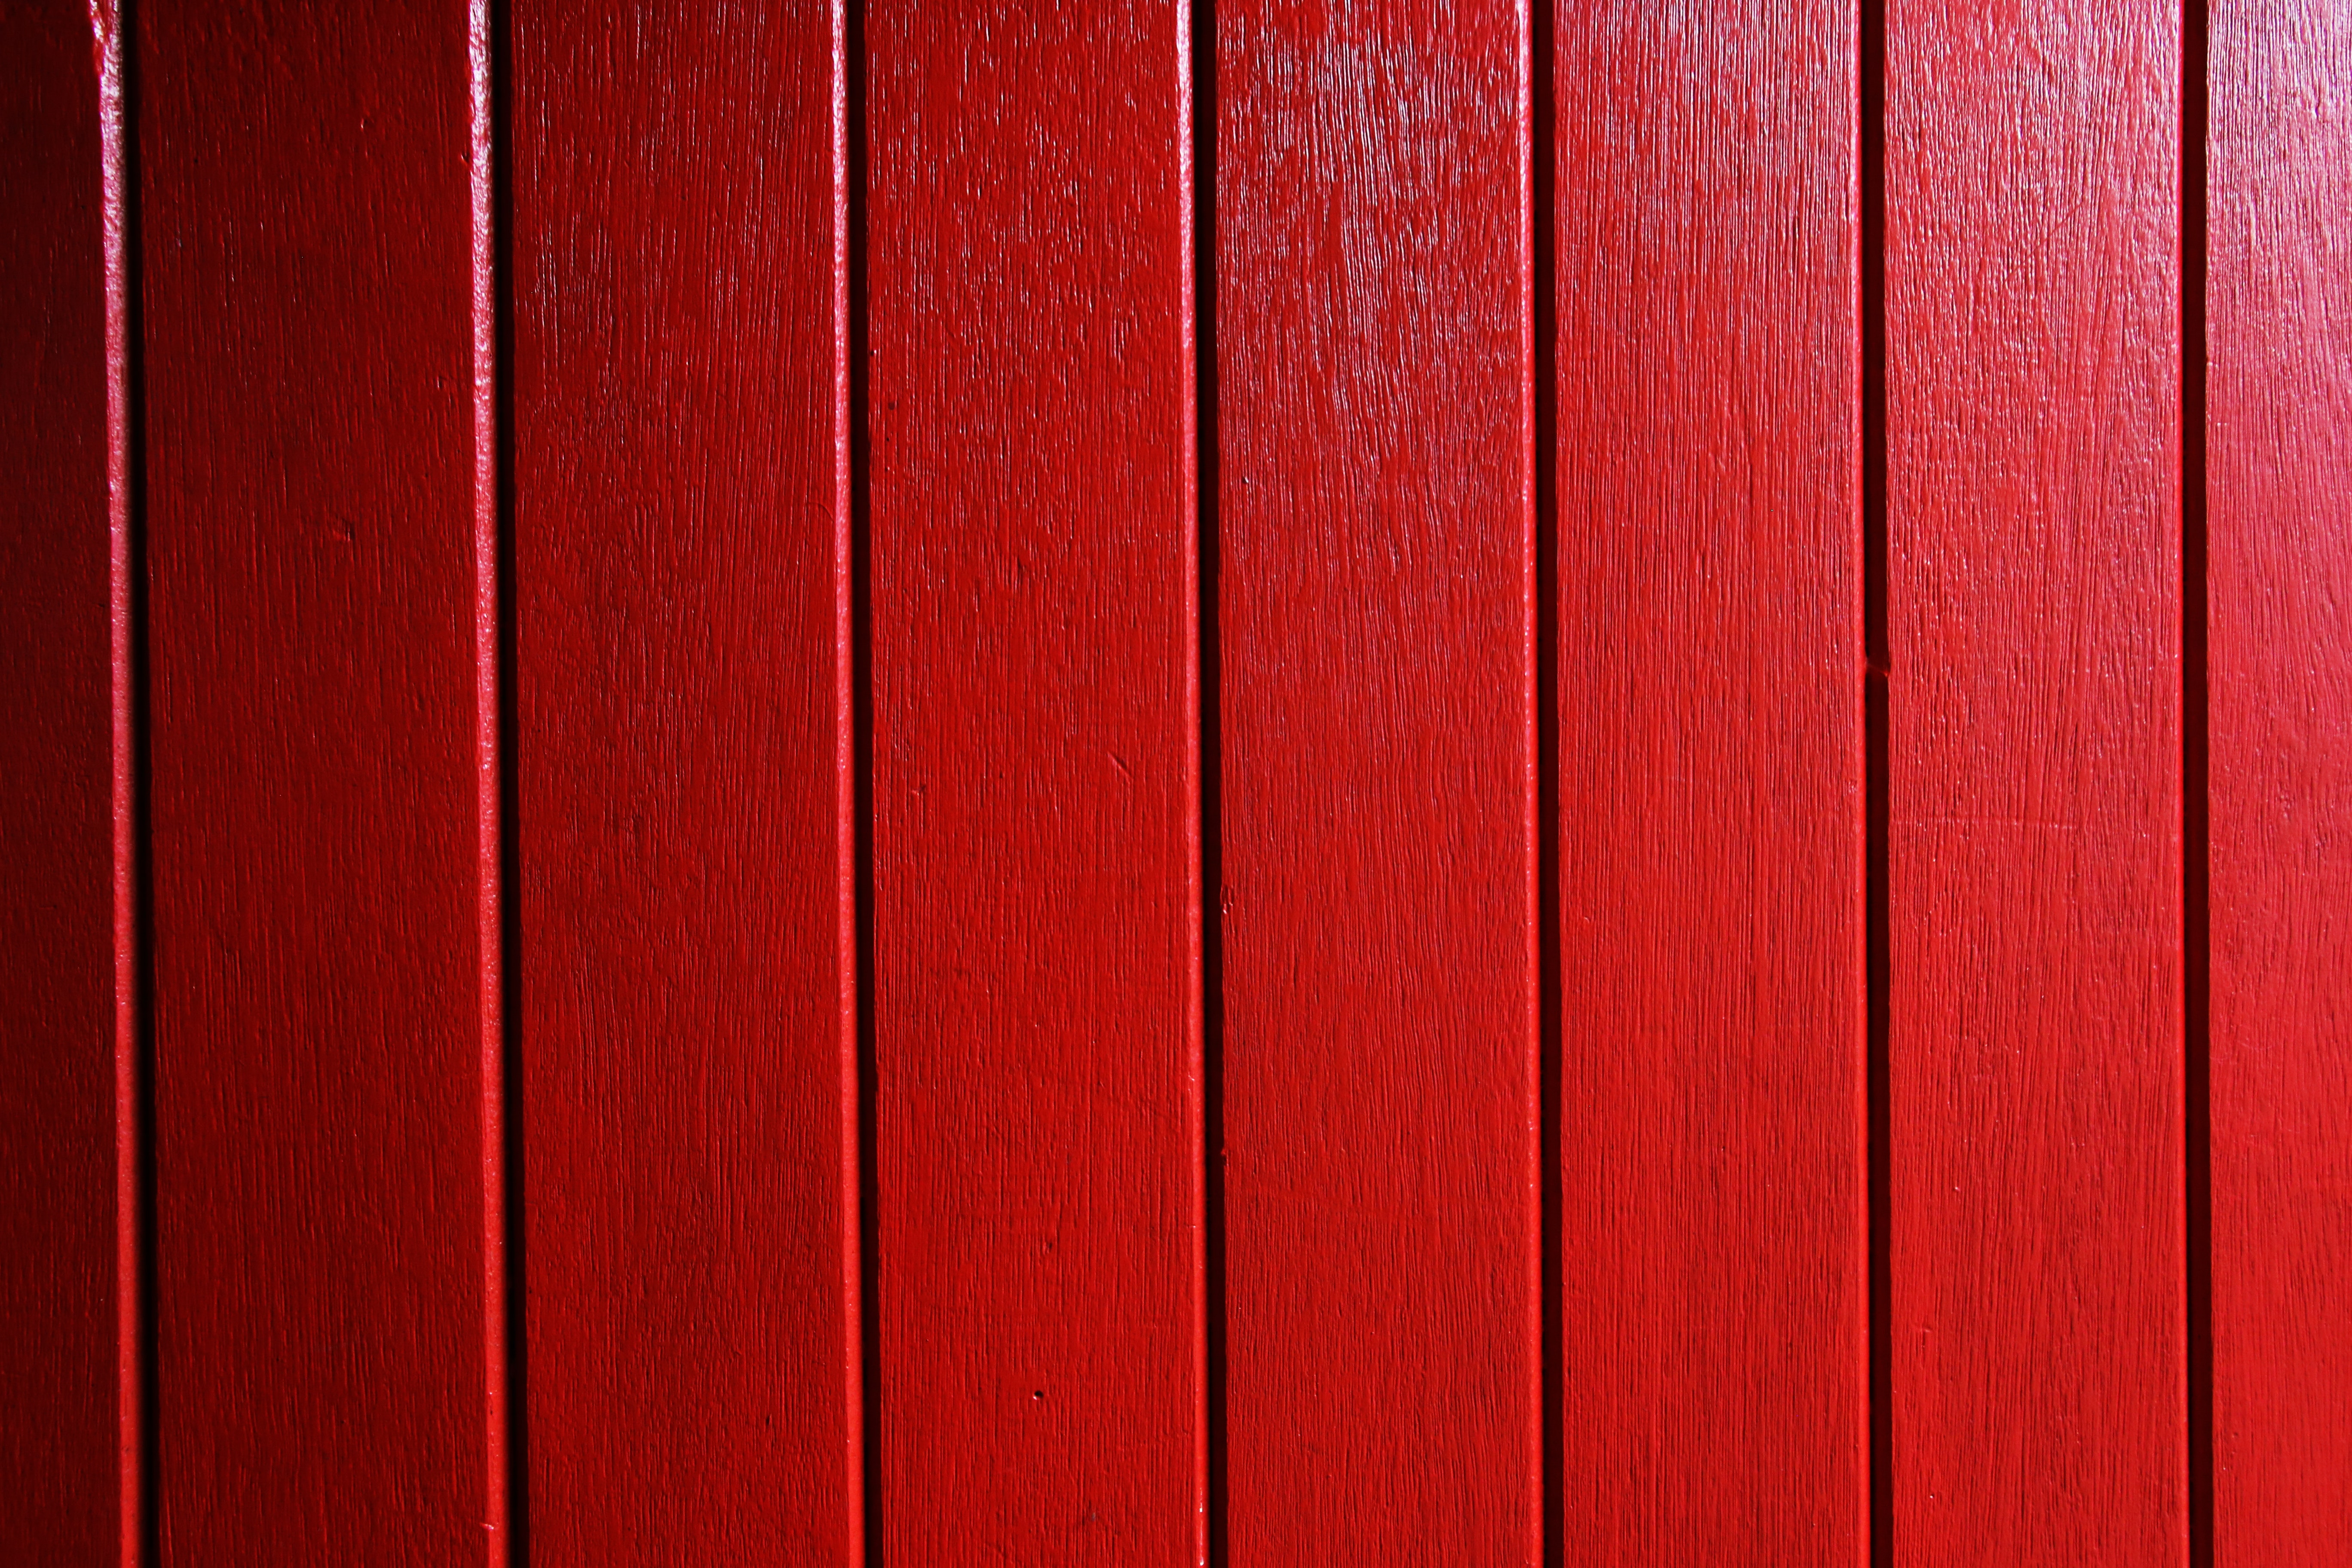 Red Wooden Surface, Texture, Surface, Wall, Wood, HQ Photo